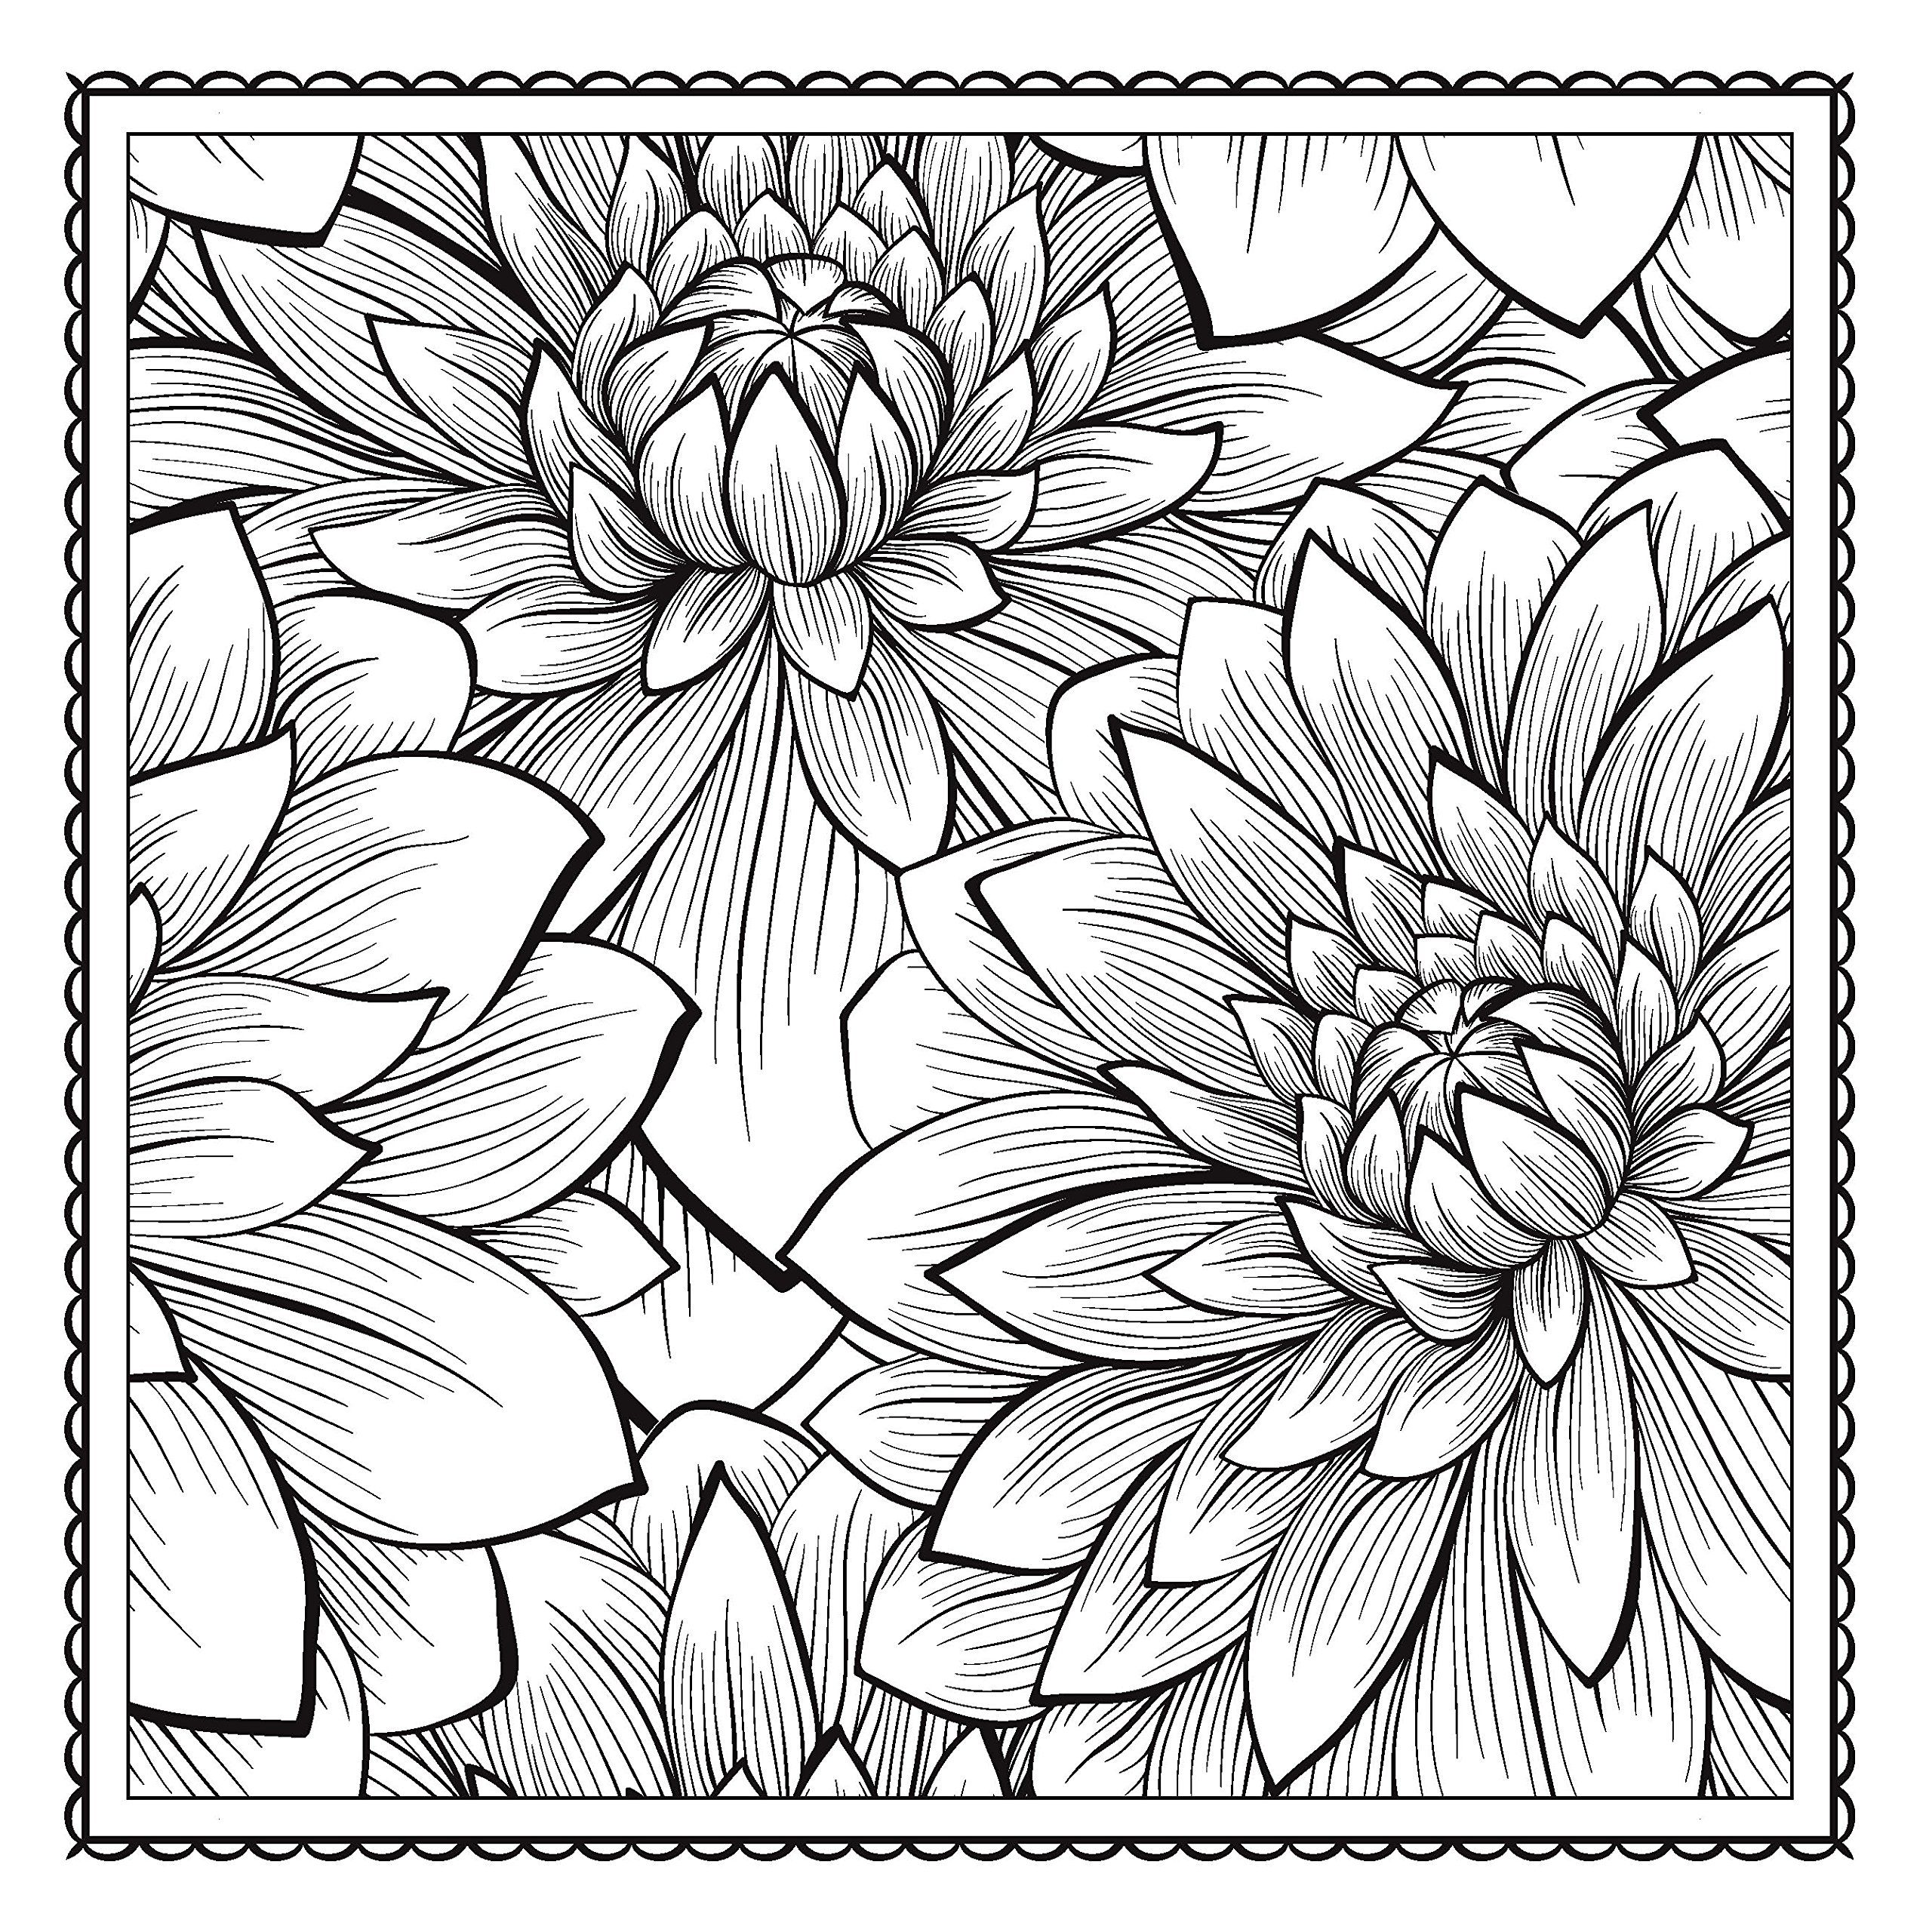 Lotus designs coloring book - Blossom Magic Beautiful Floral Patterns Coloring Book For Adults Arsedition 9781438007311 Books